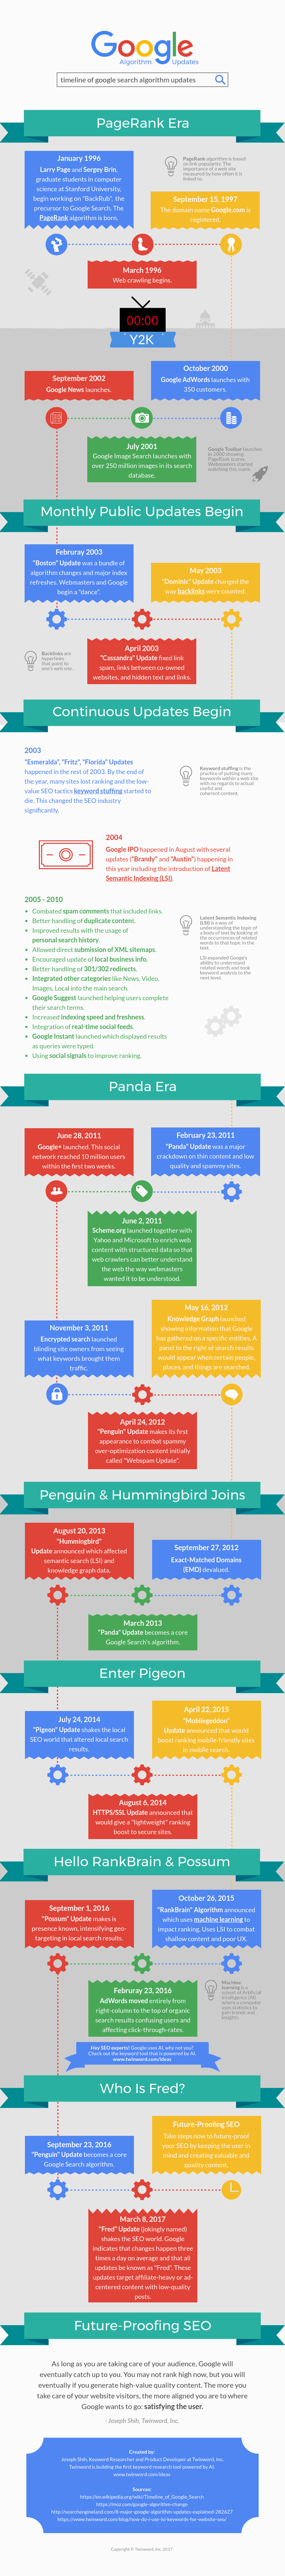 Infographic - A Timeline Of Google Search Algorithm Updates